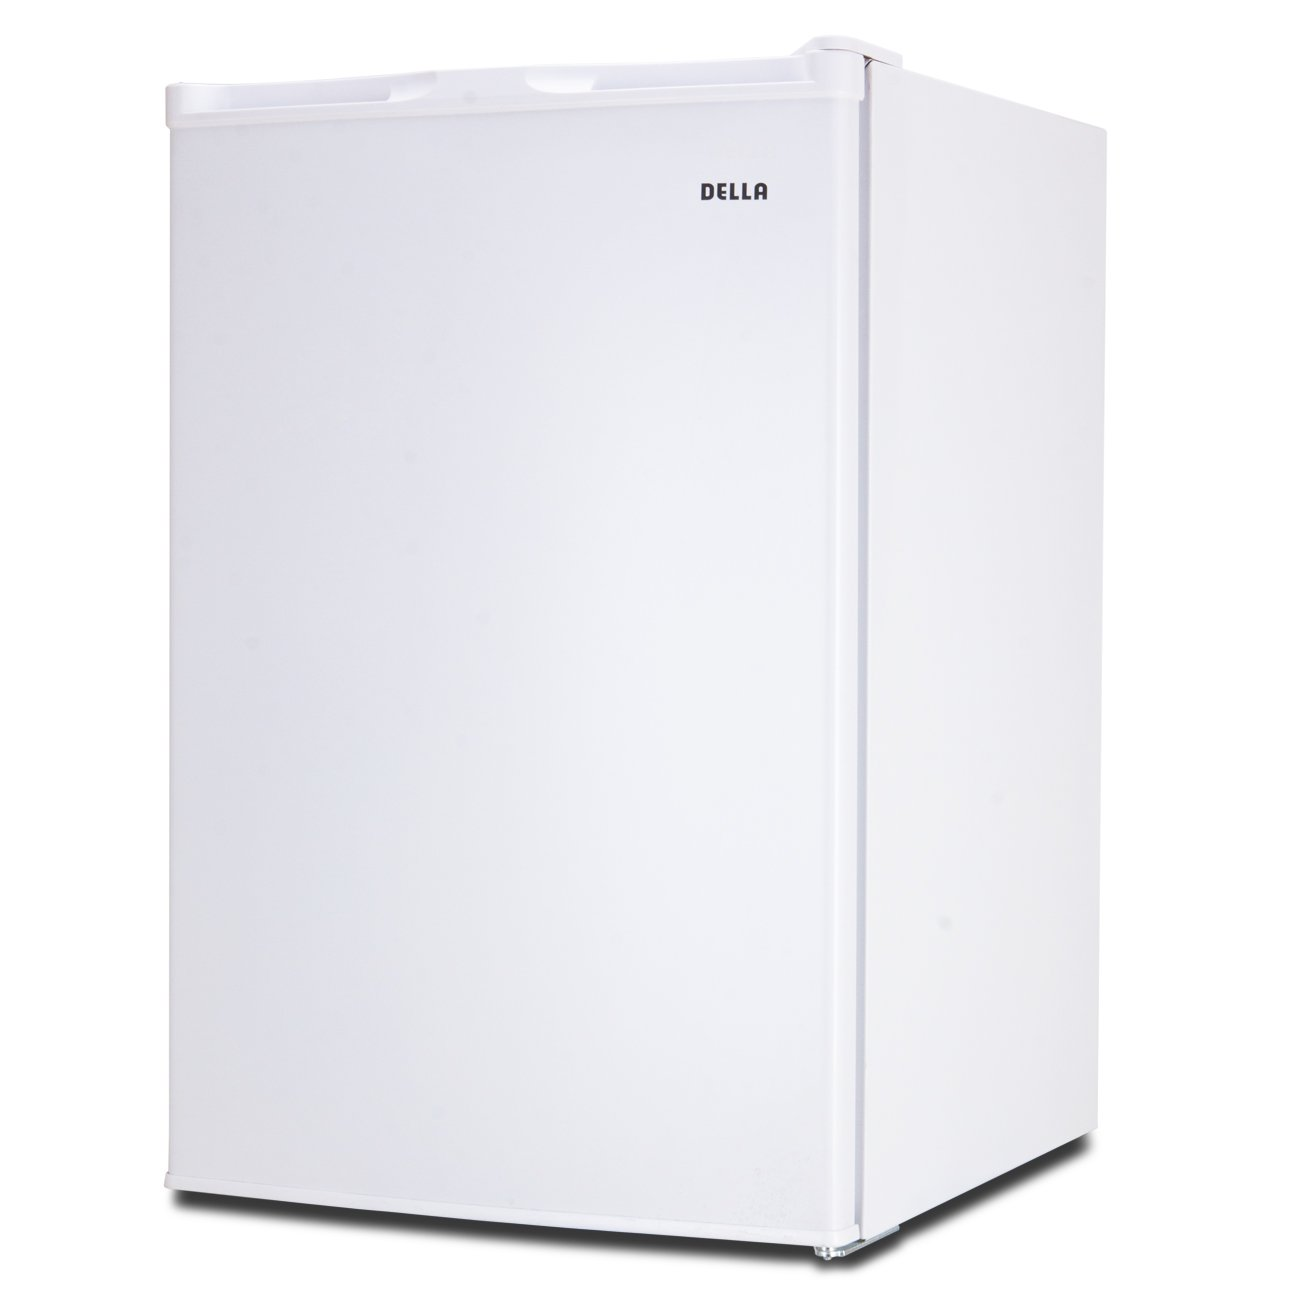 Della Compact Single Reversible Door Upright Freezer, 3.0 Cubic Feet, White